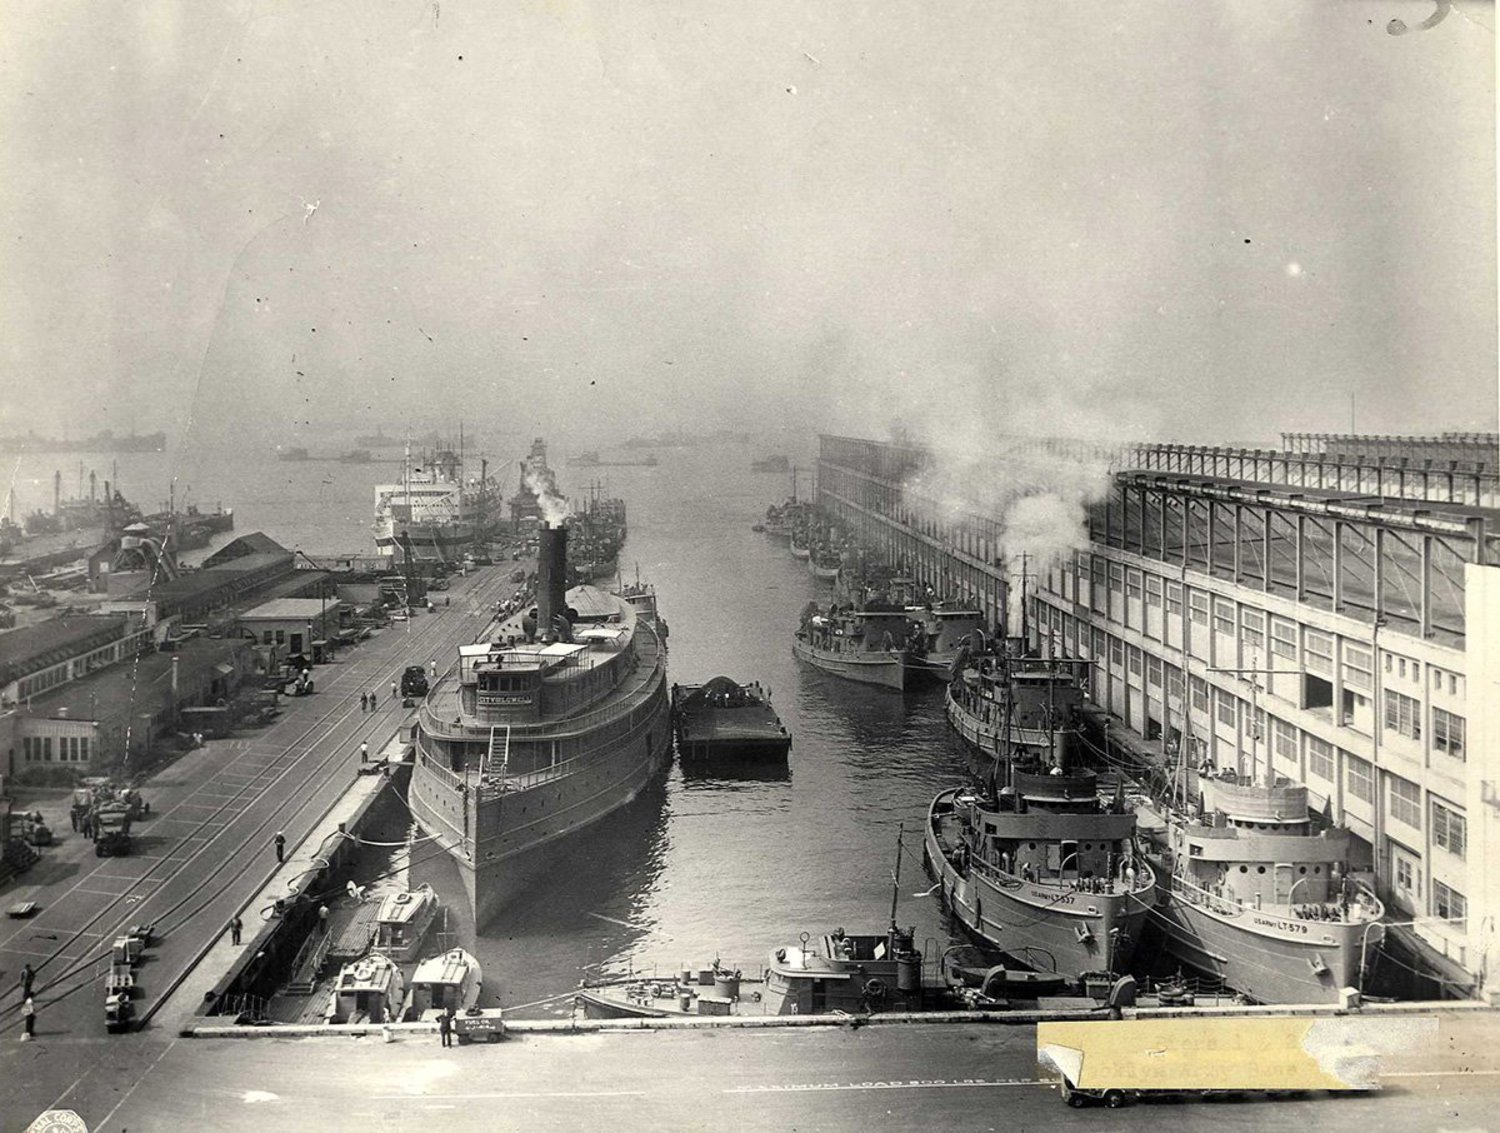 "BAT was designed as an ""inter-modal"" shipping port, meaning supplies and people could move seamlessly between trains and ships. Train tracks led directly onto piers so troops and supplies could load onto ships with minimal delay. During World War II, the Terminal was used primarily to transport supplies and house the 60,000 workers who made the port of New York run."